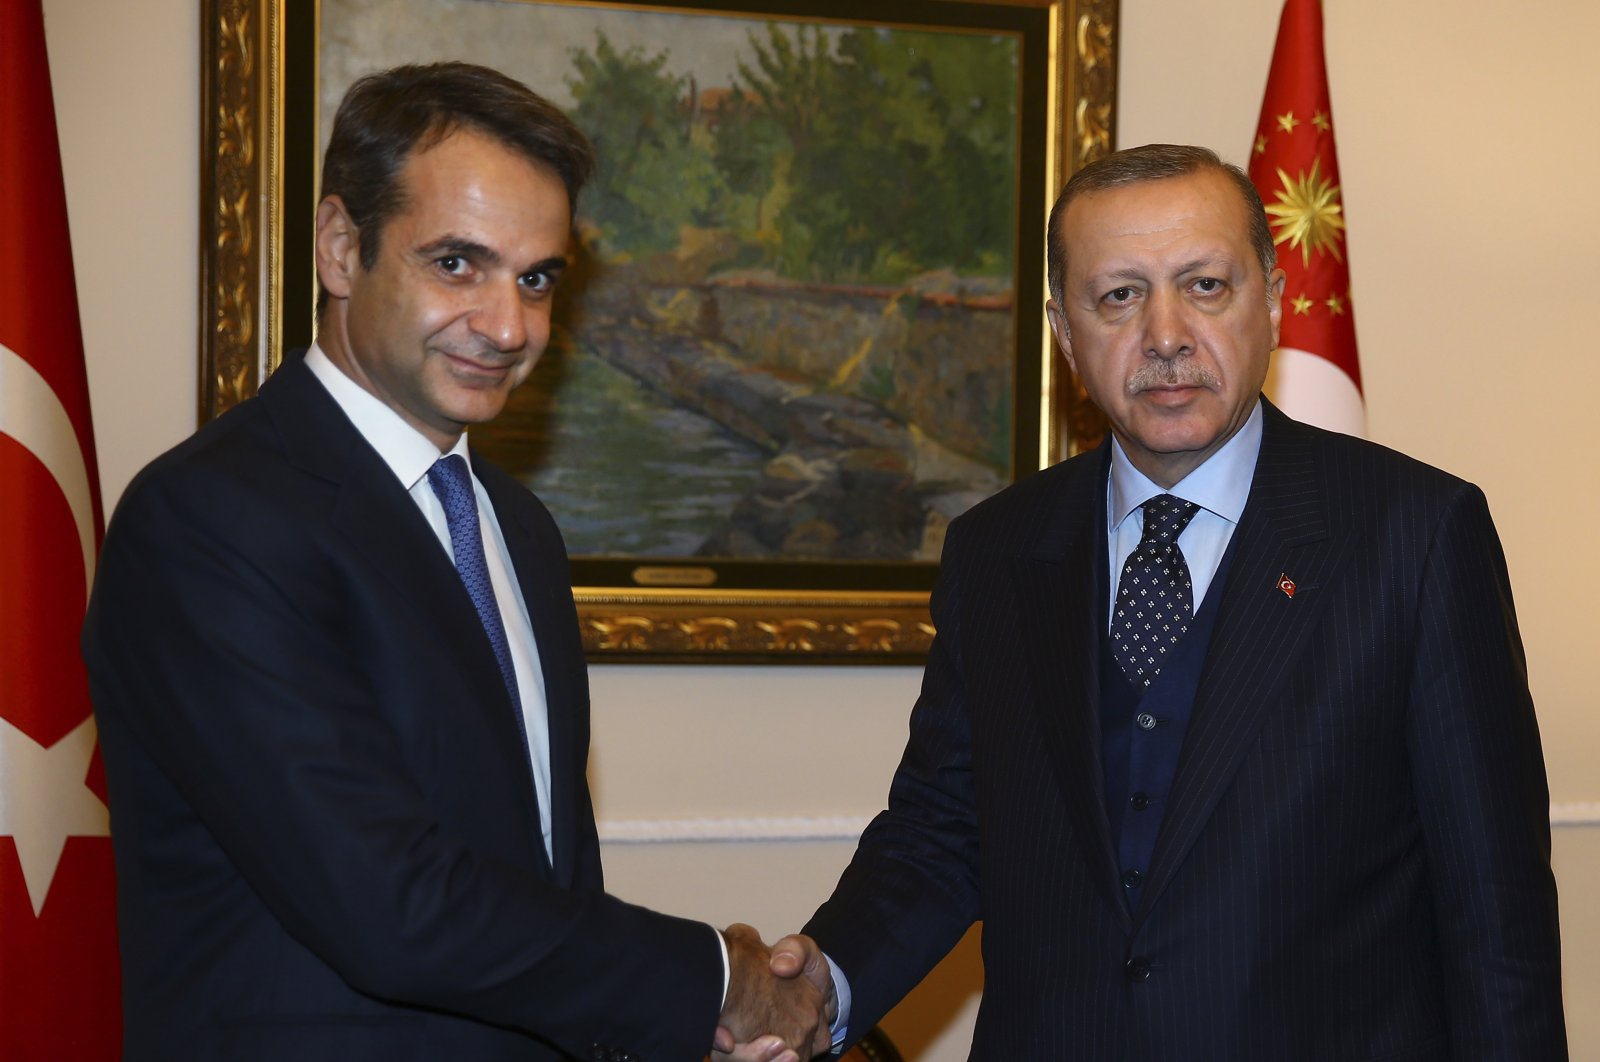 Turkey's President Recep Tayyip Erdoğan, right, on a two-day official visit to Greece, meets Kyriakos Mitsotakis, left, leader of the main opposition New Democracy party in Athens, Thursday, Dec. 7, 2017. (AP File Photo)